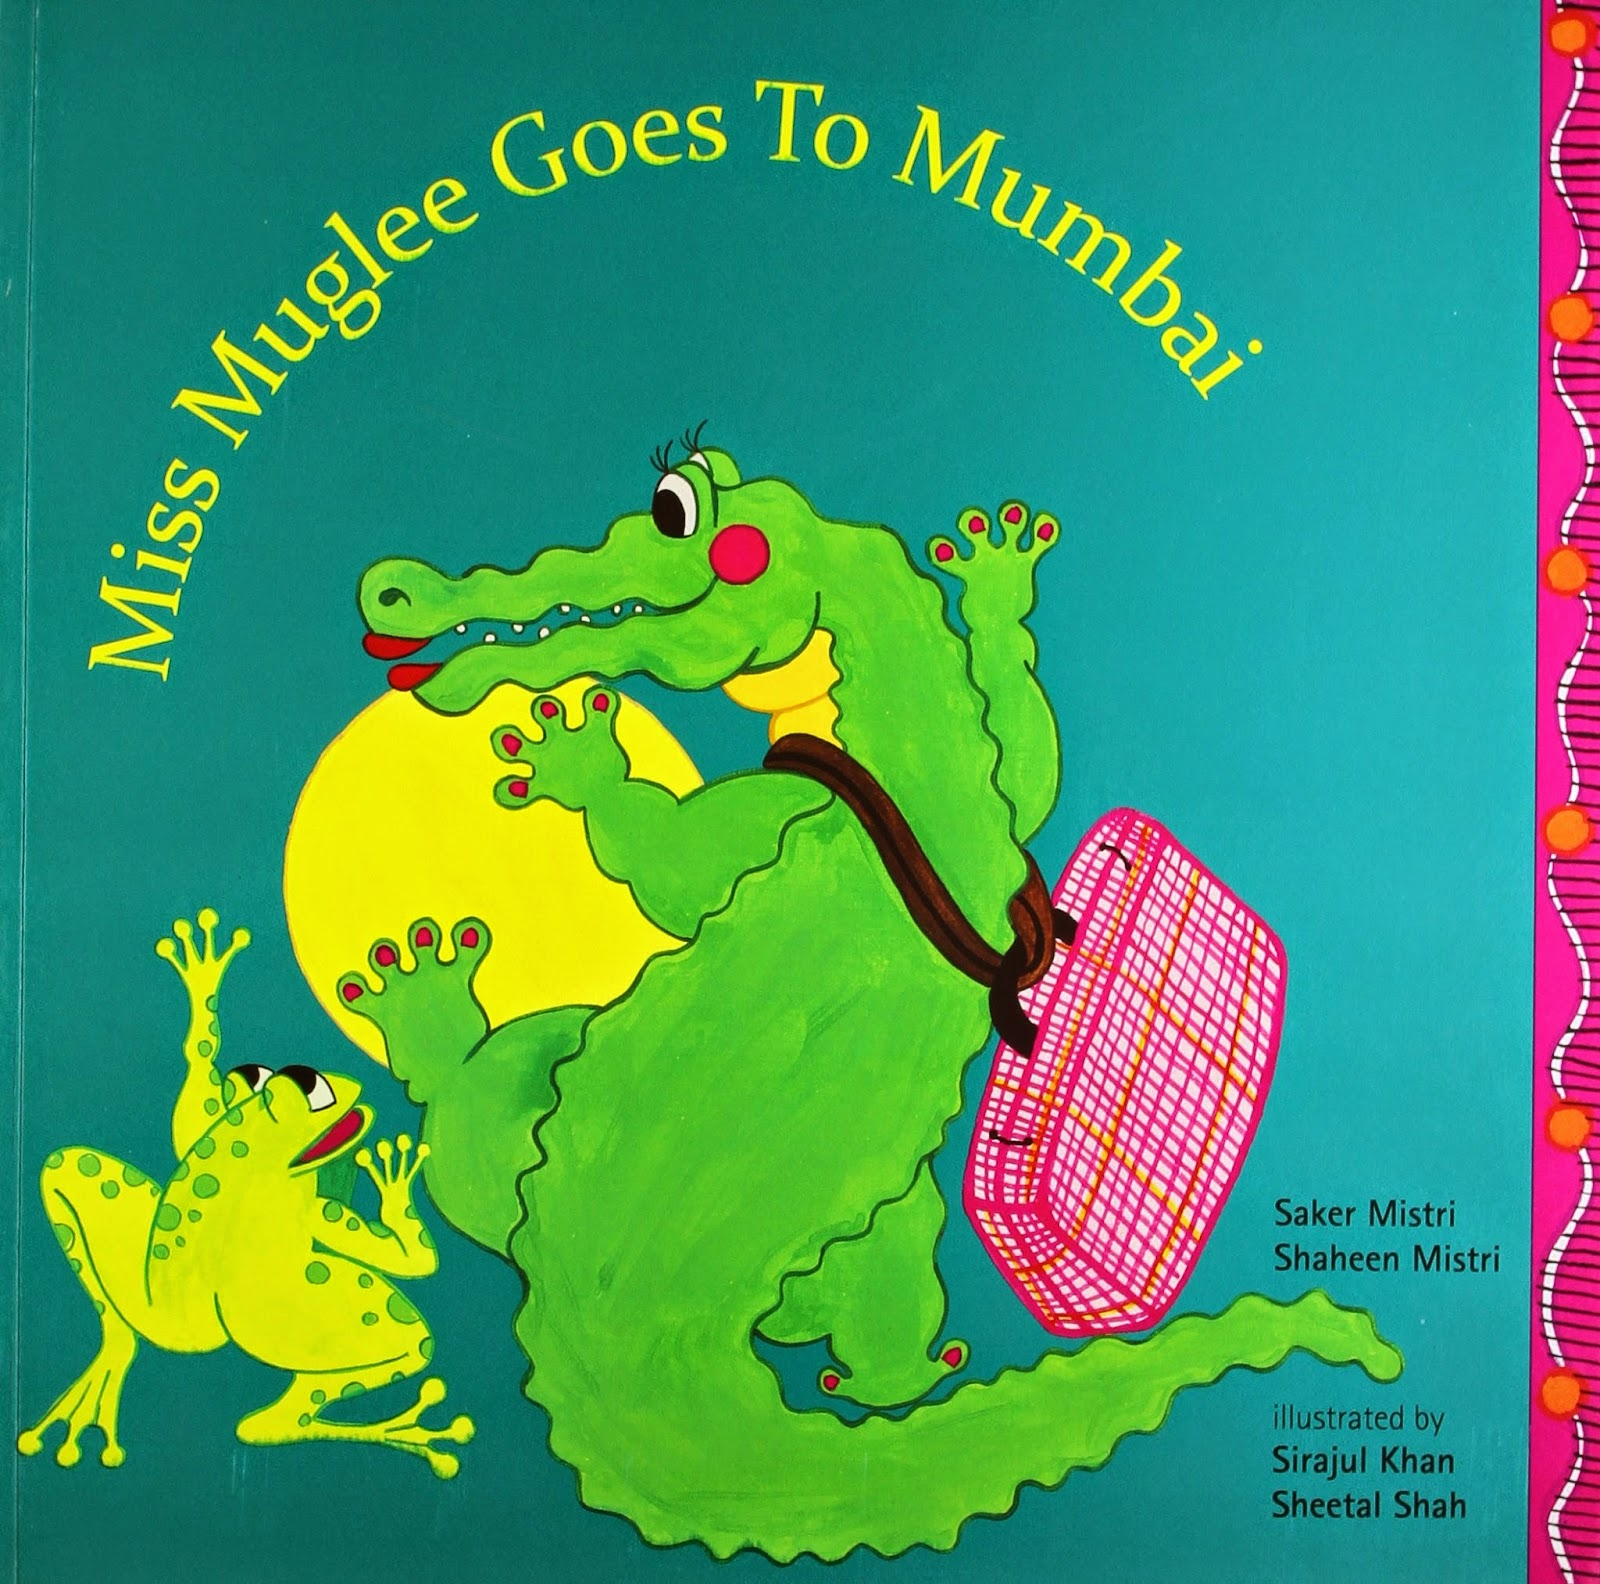 Books: Miss Muglee Goes to Mumbai (Age: 3 to 8)